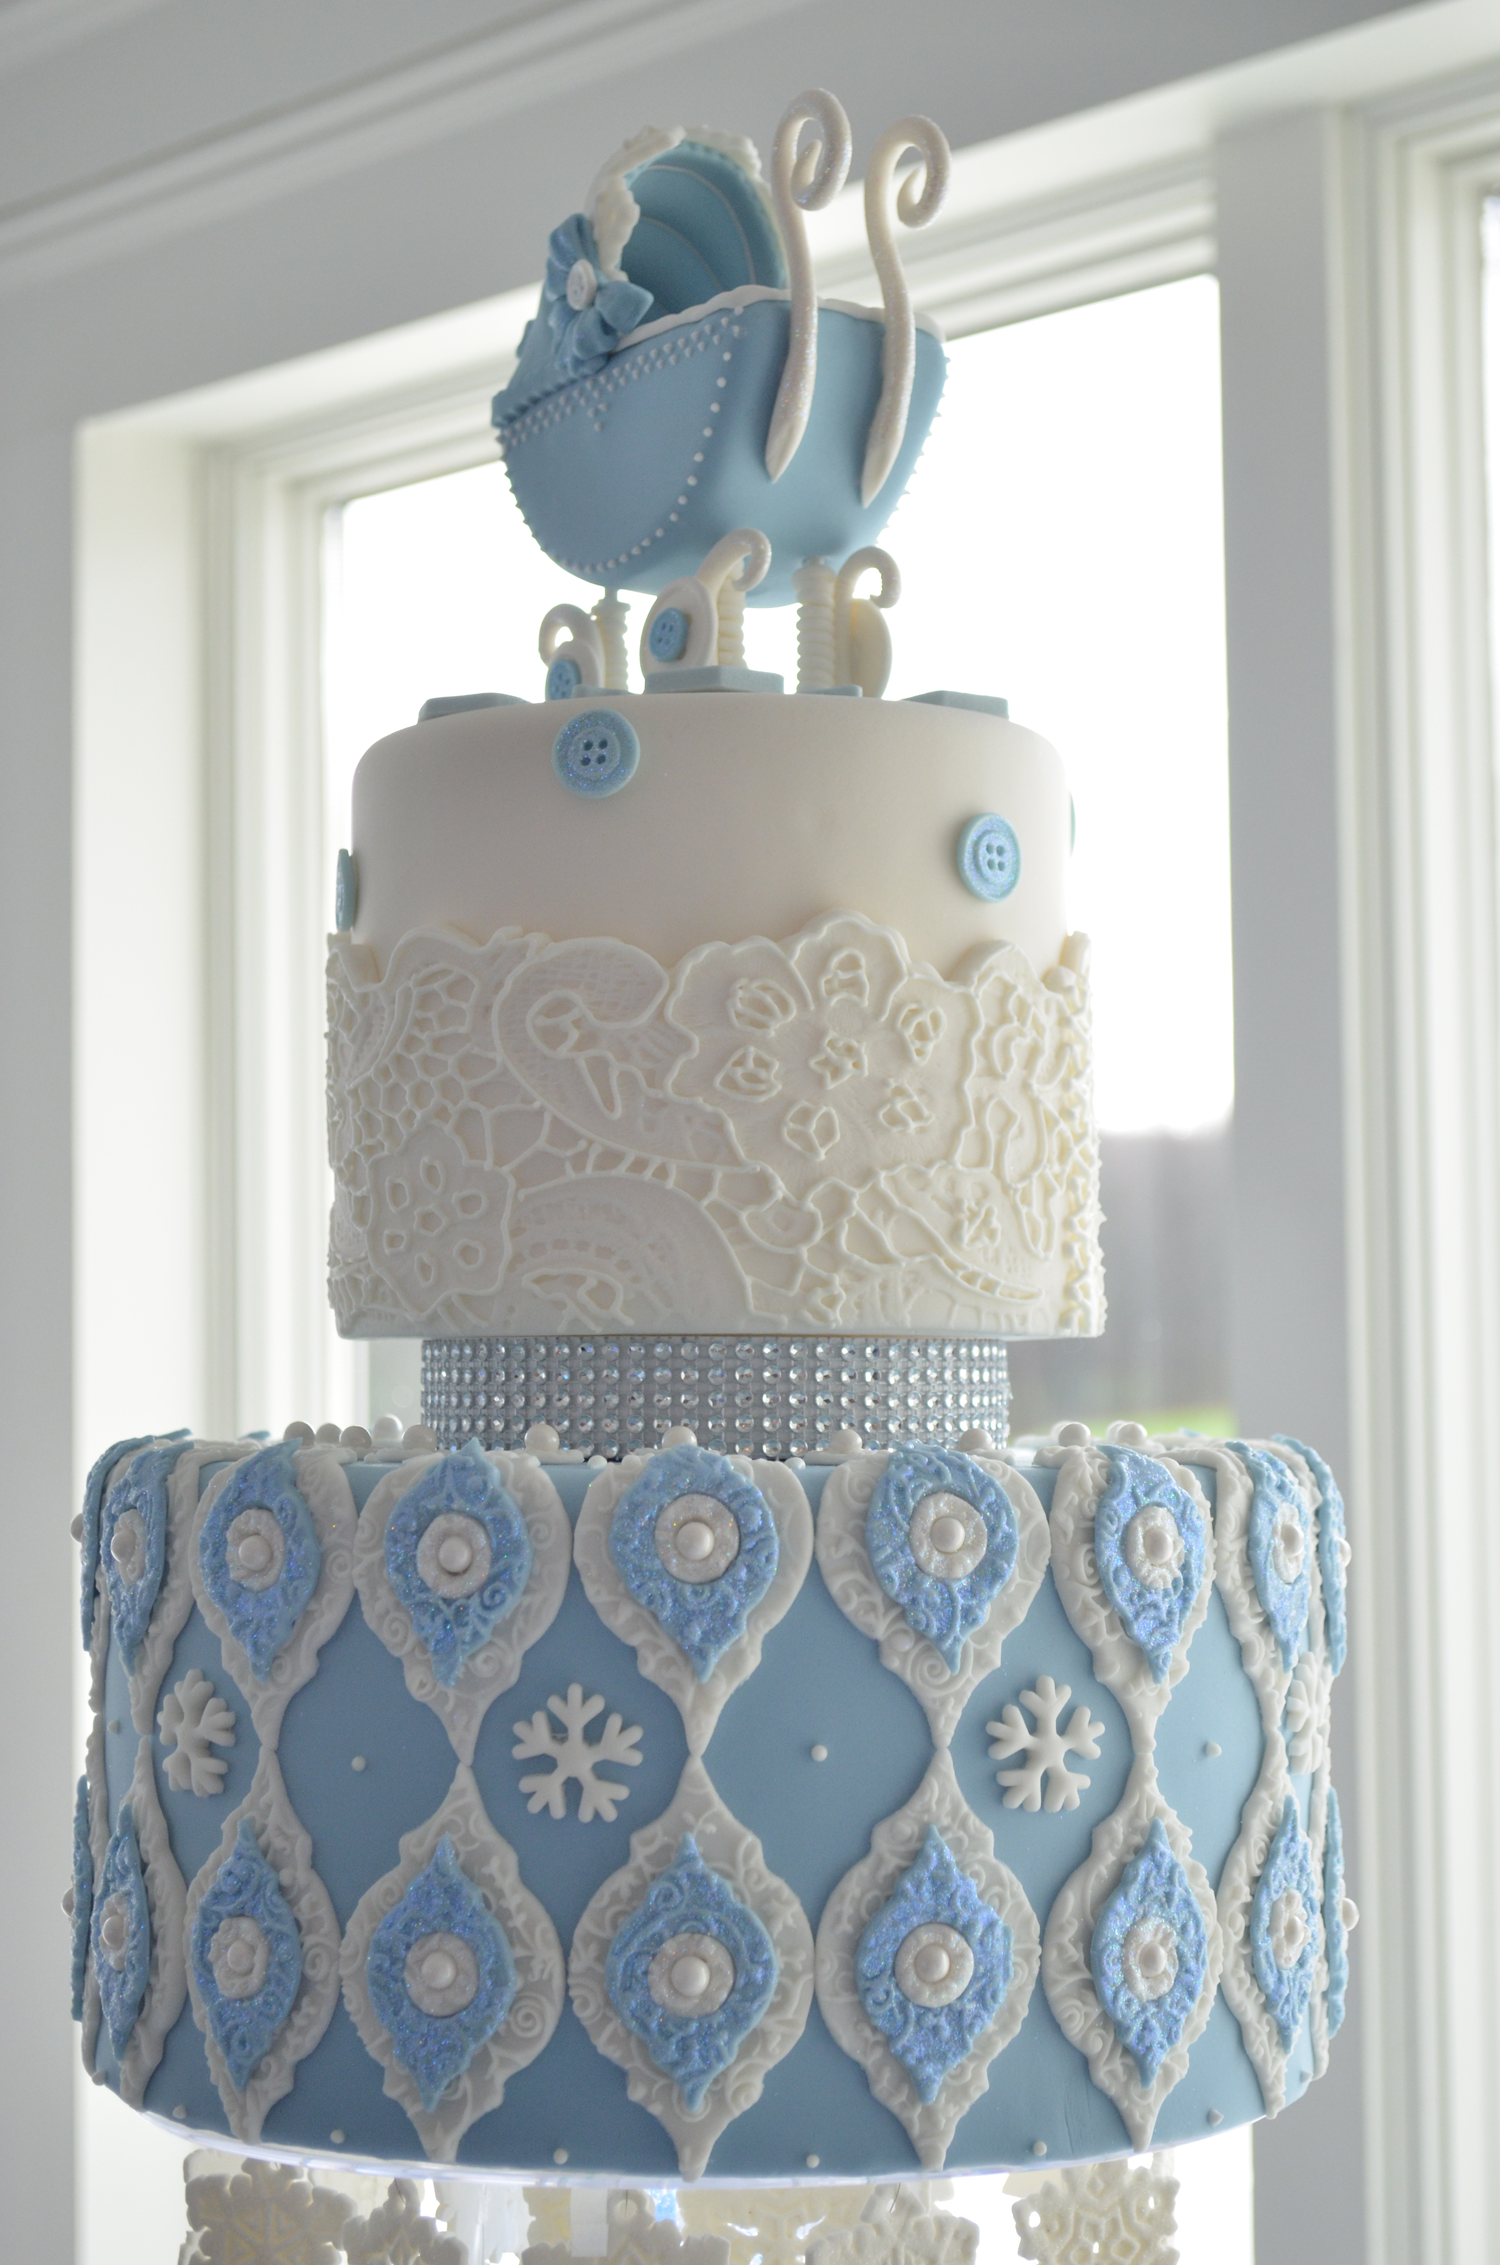 Blue Winter Wonderland cake for boy's baby shower with gumpaste baby  carriage, sugar snowflakes, lace overlays